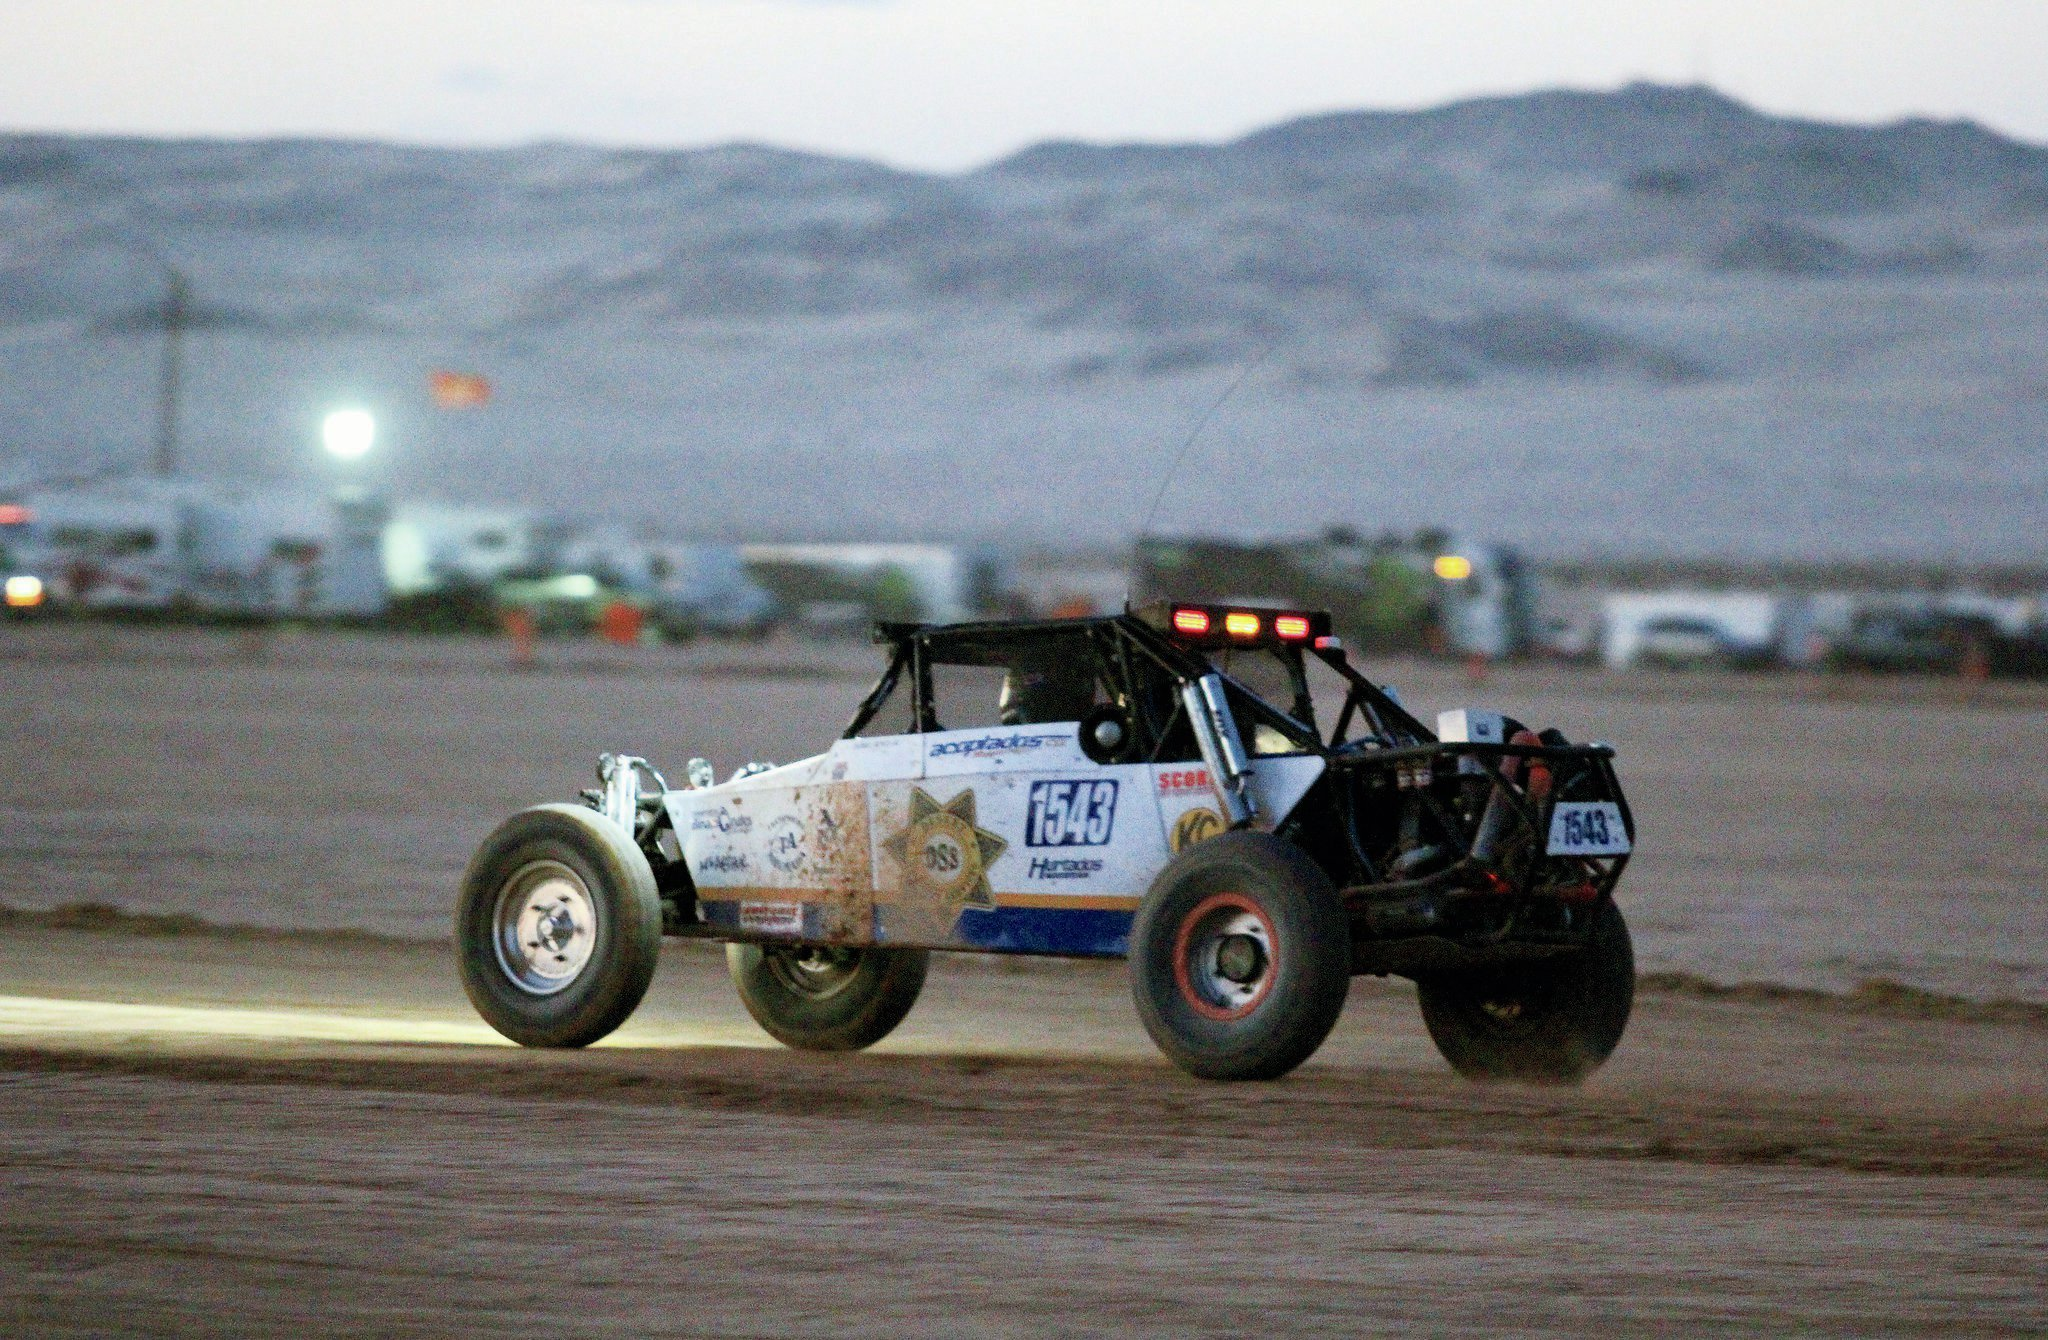 The SCORE Desert Challenge featured three days of racing split into six groups running two heats each.